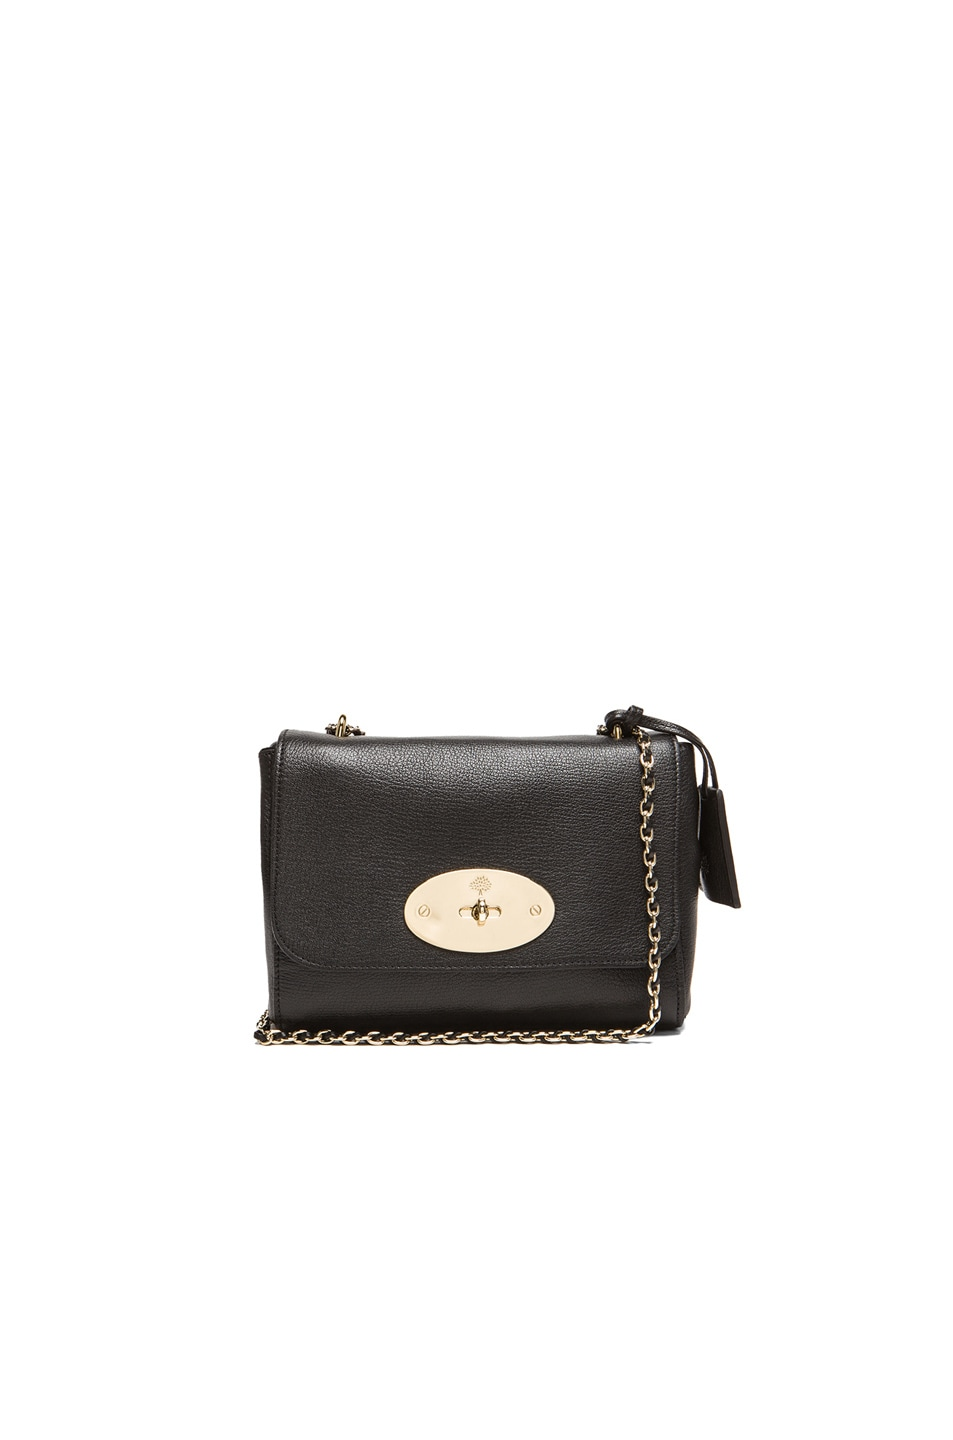 7166d68ecf4 low price mulberry lily wallet hours 2d00f aa08c